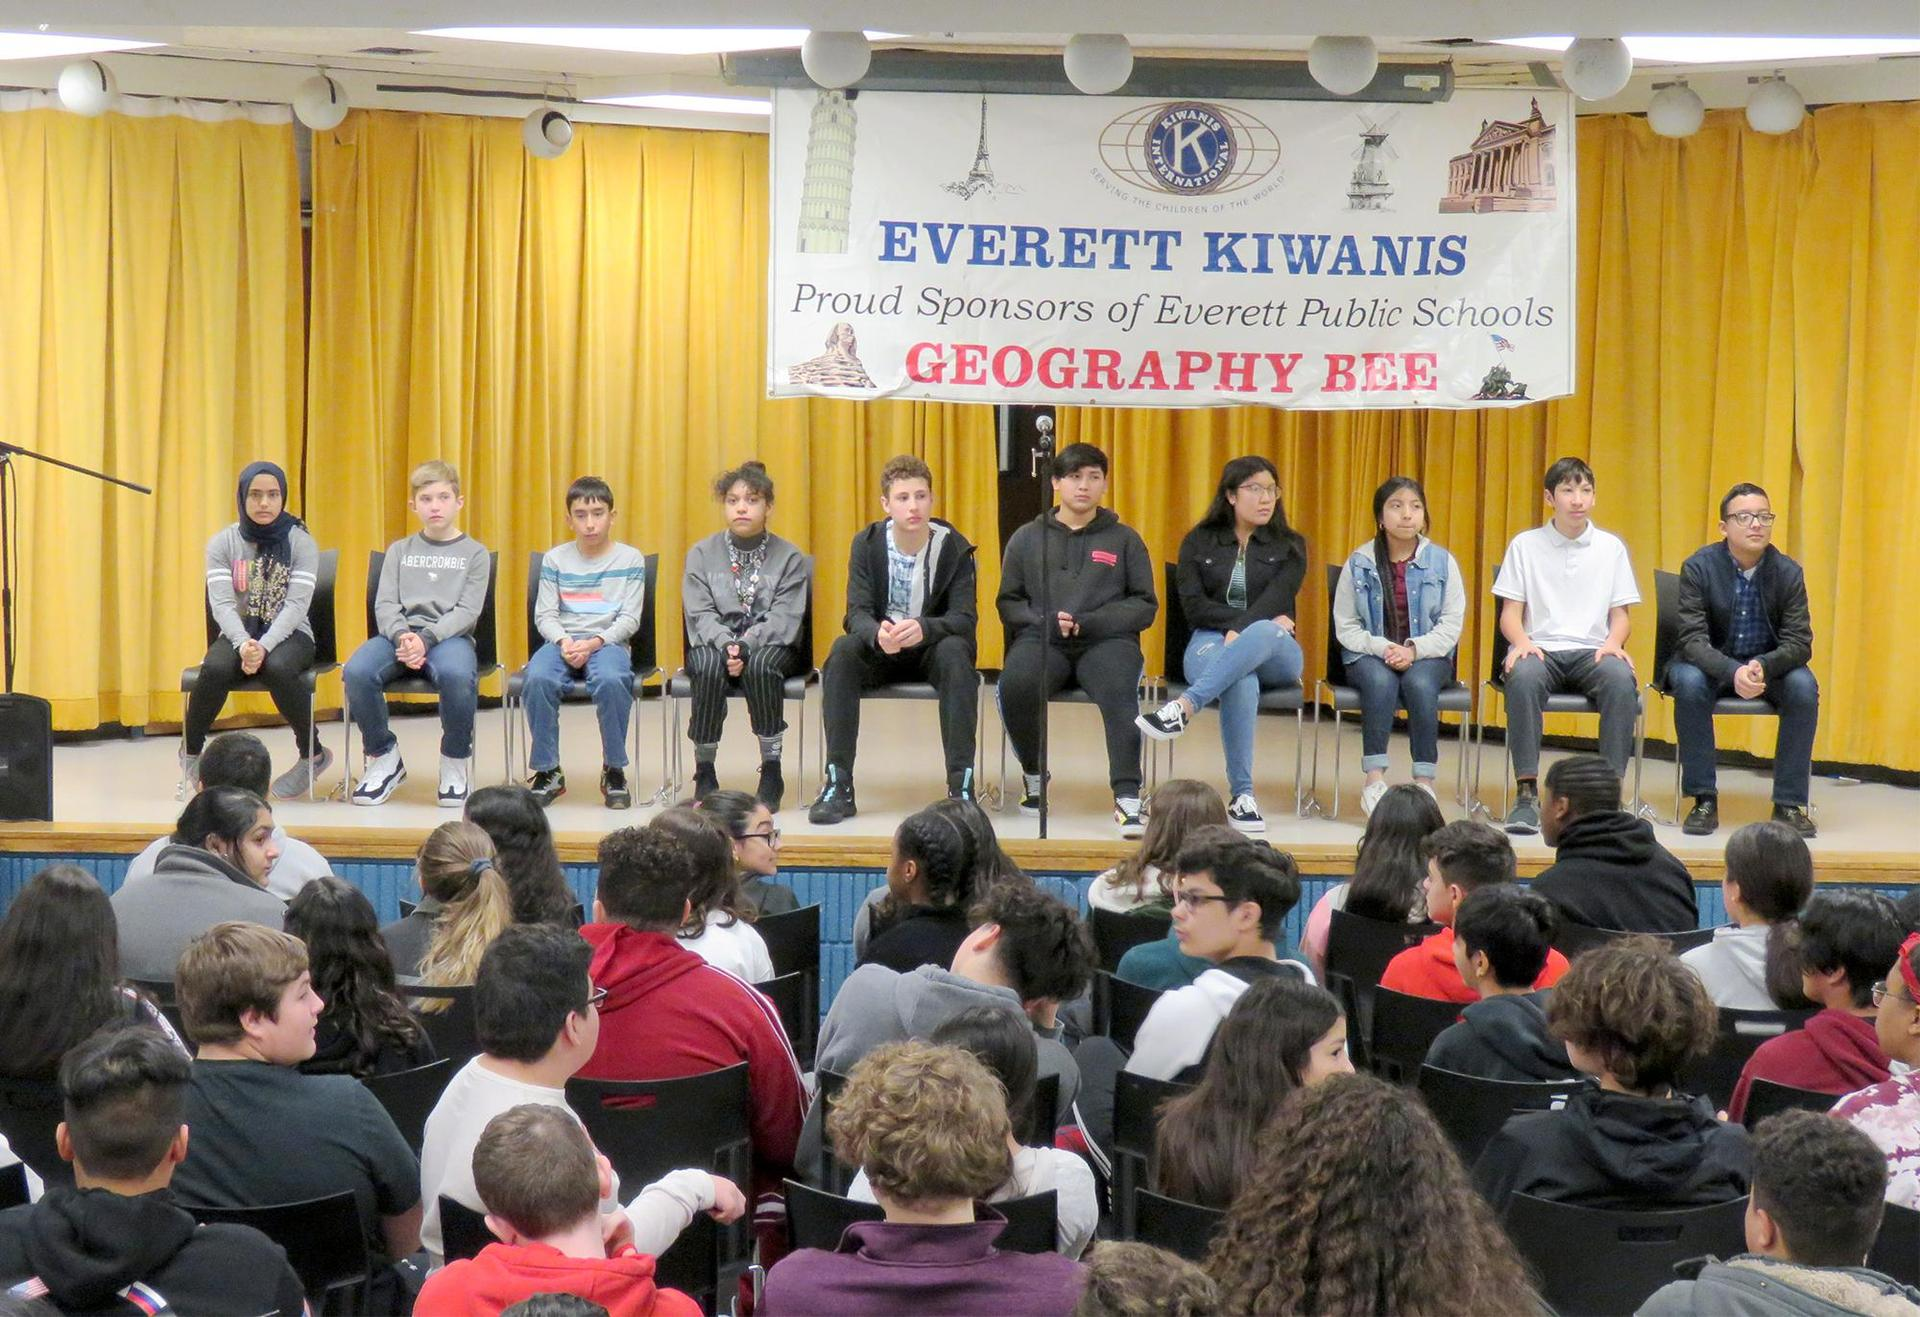 Geography Bee contestants take their seats on stage